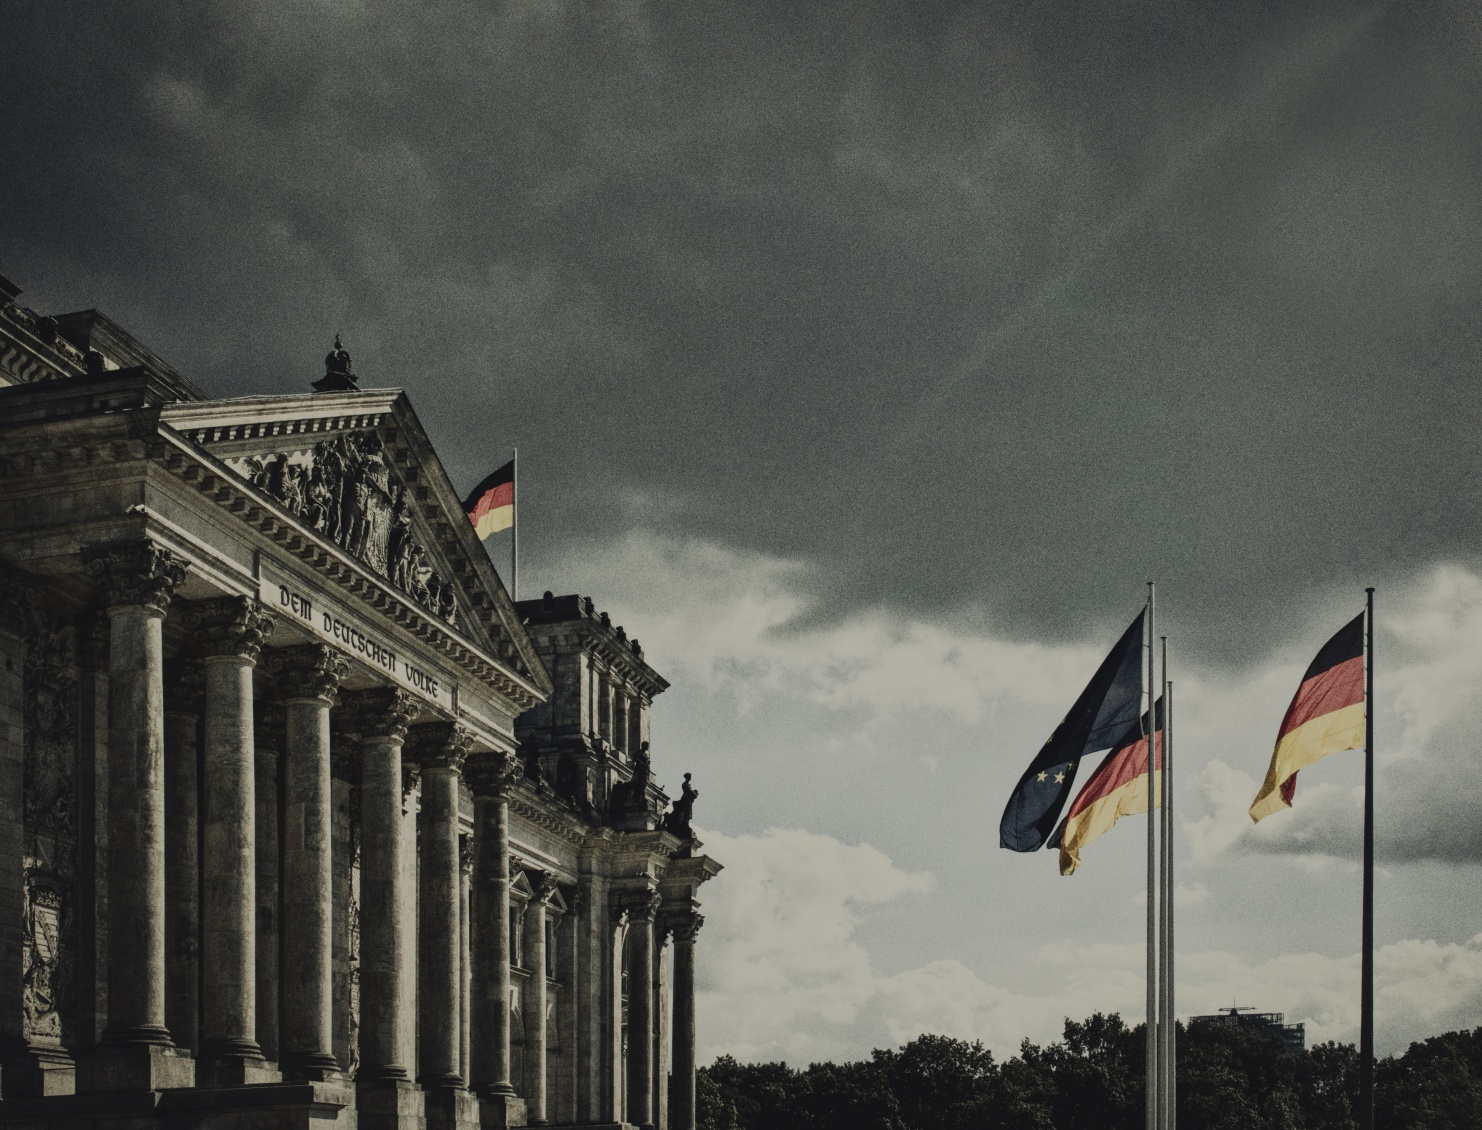 Deutscher Reichstag mit grauem Wetter © Photo by David Cohen on Unsplash